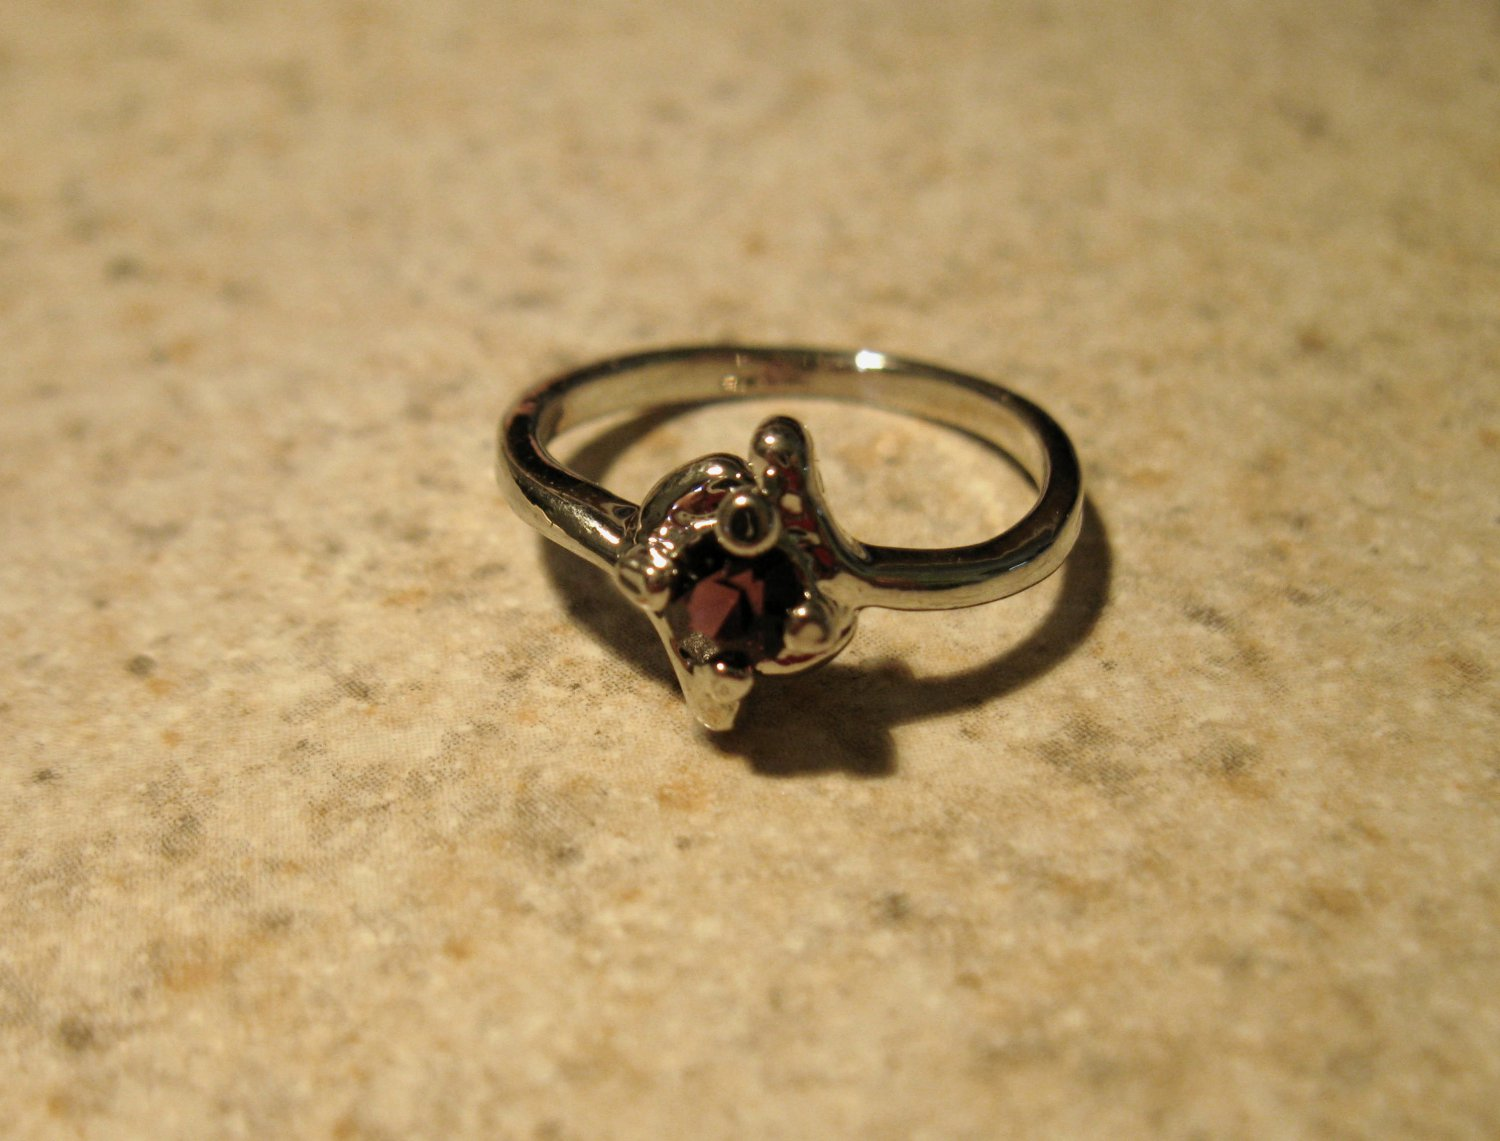 Ring Beautiful Purple Amethyst in Solitaire Setting Size 5.5 New! #776